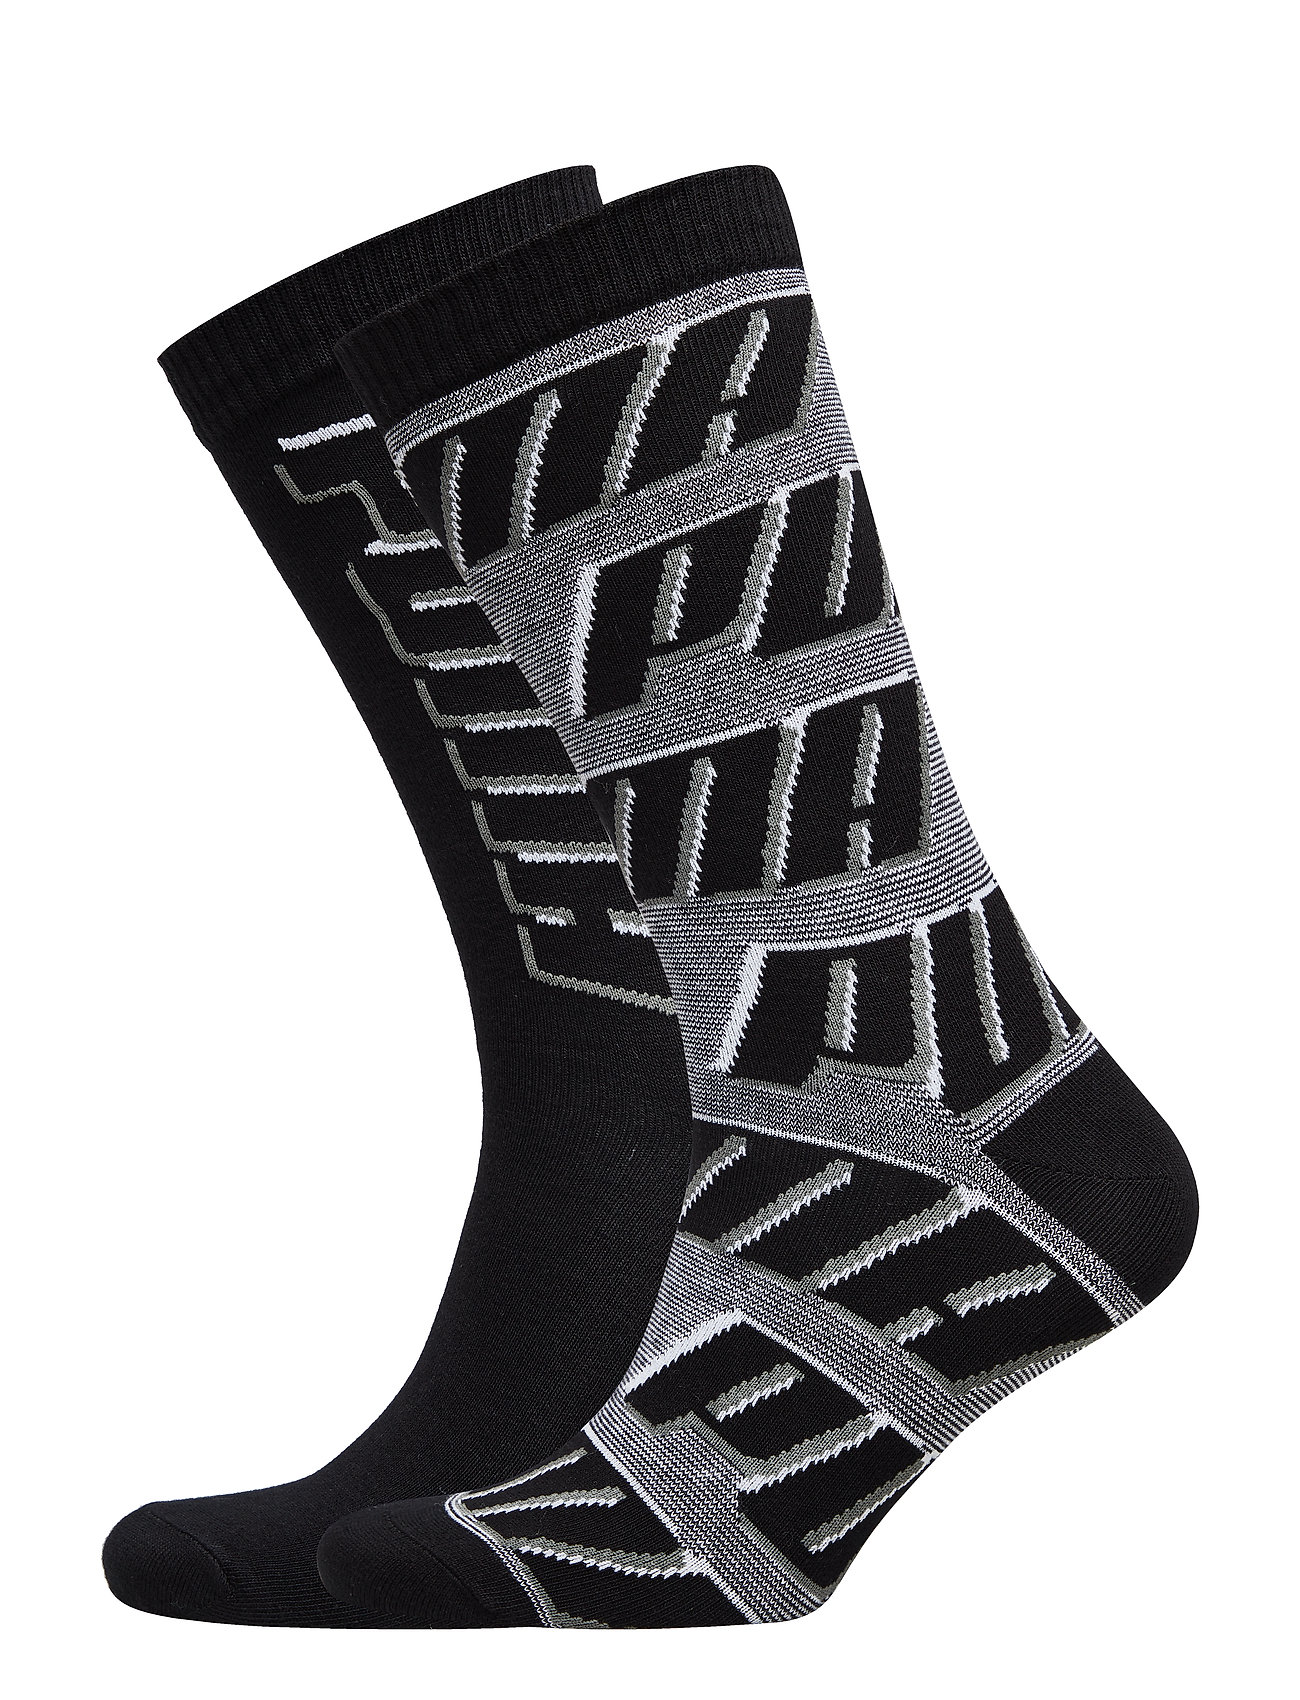 Sock All Logo Puma Unisexblack Over 2p dCxeBo